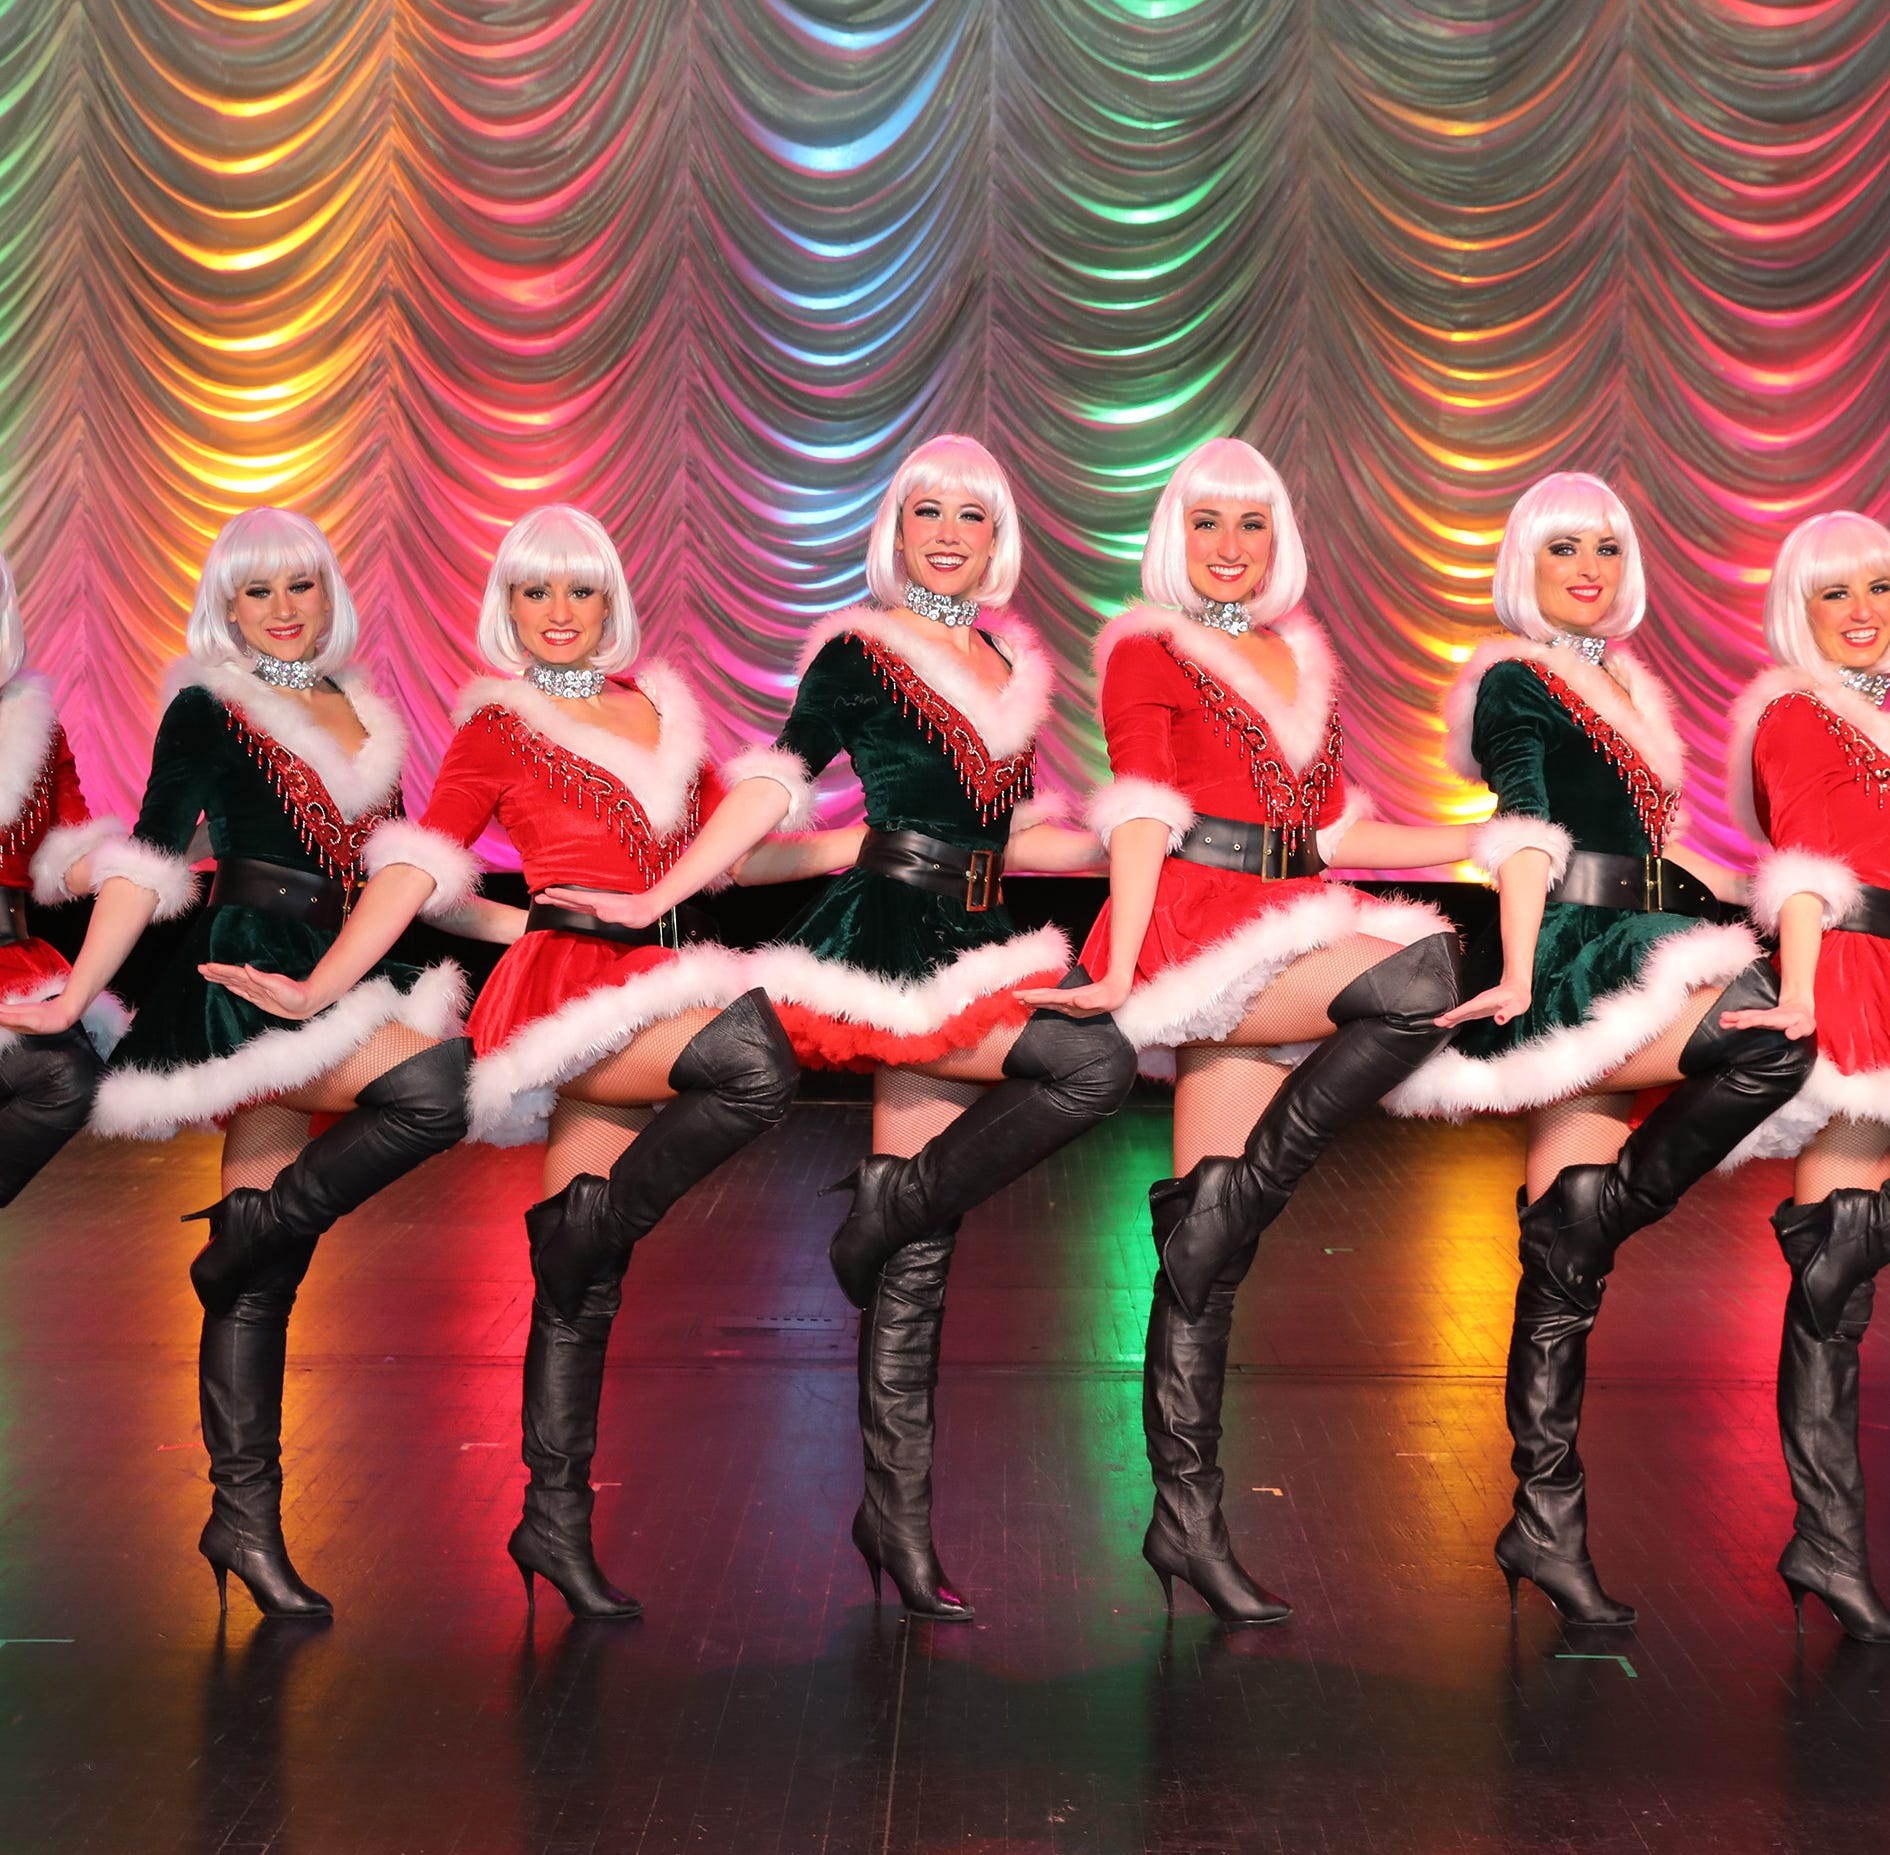 'Jingle,' the Tropicana's holiday show, works its magic for 4-week run in A.C.